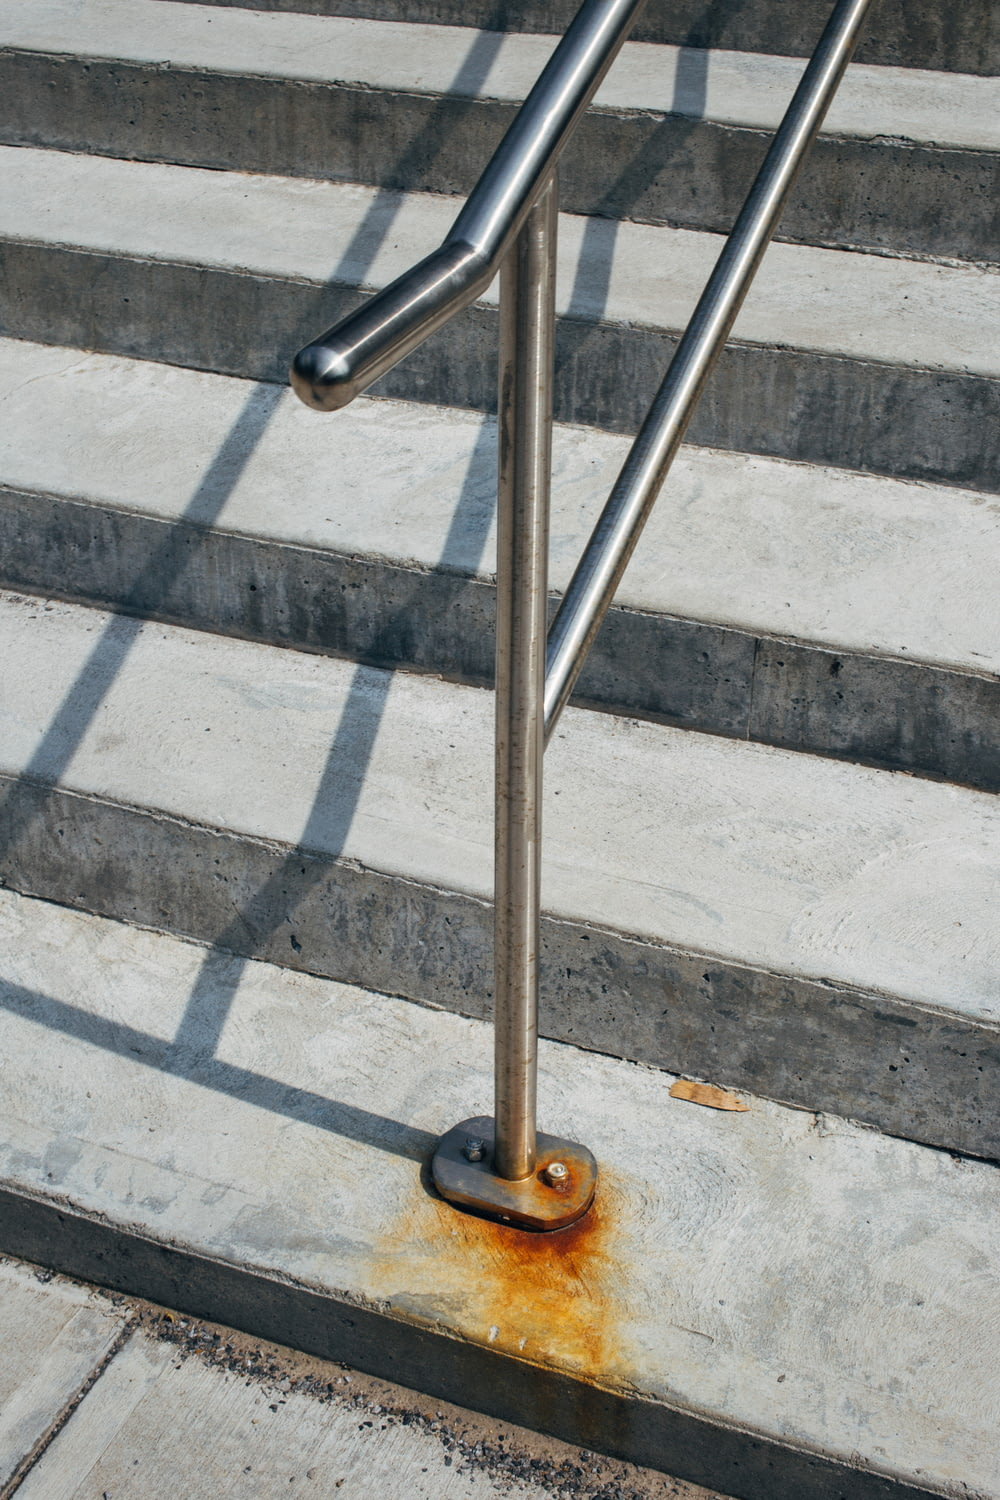 rust at the base of handrails on stairs